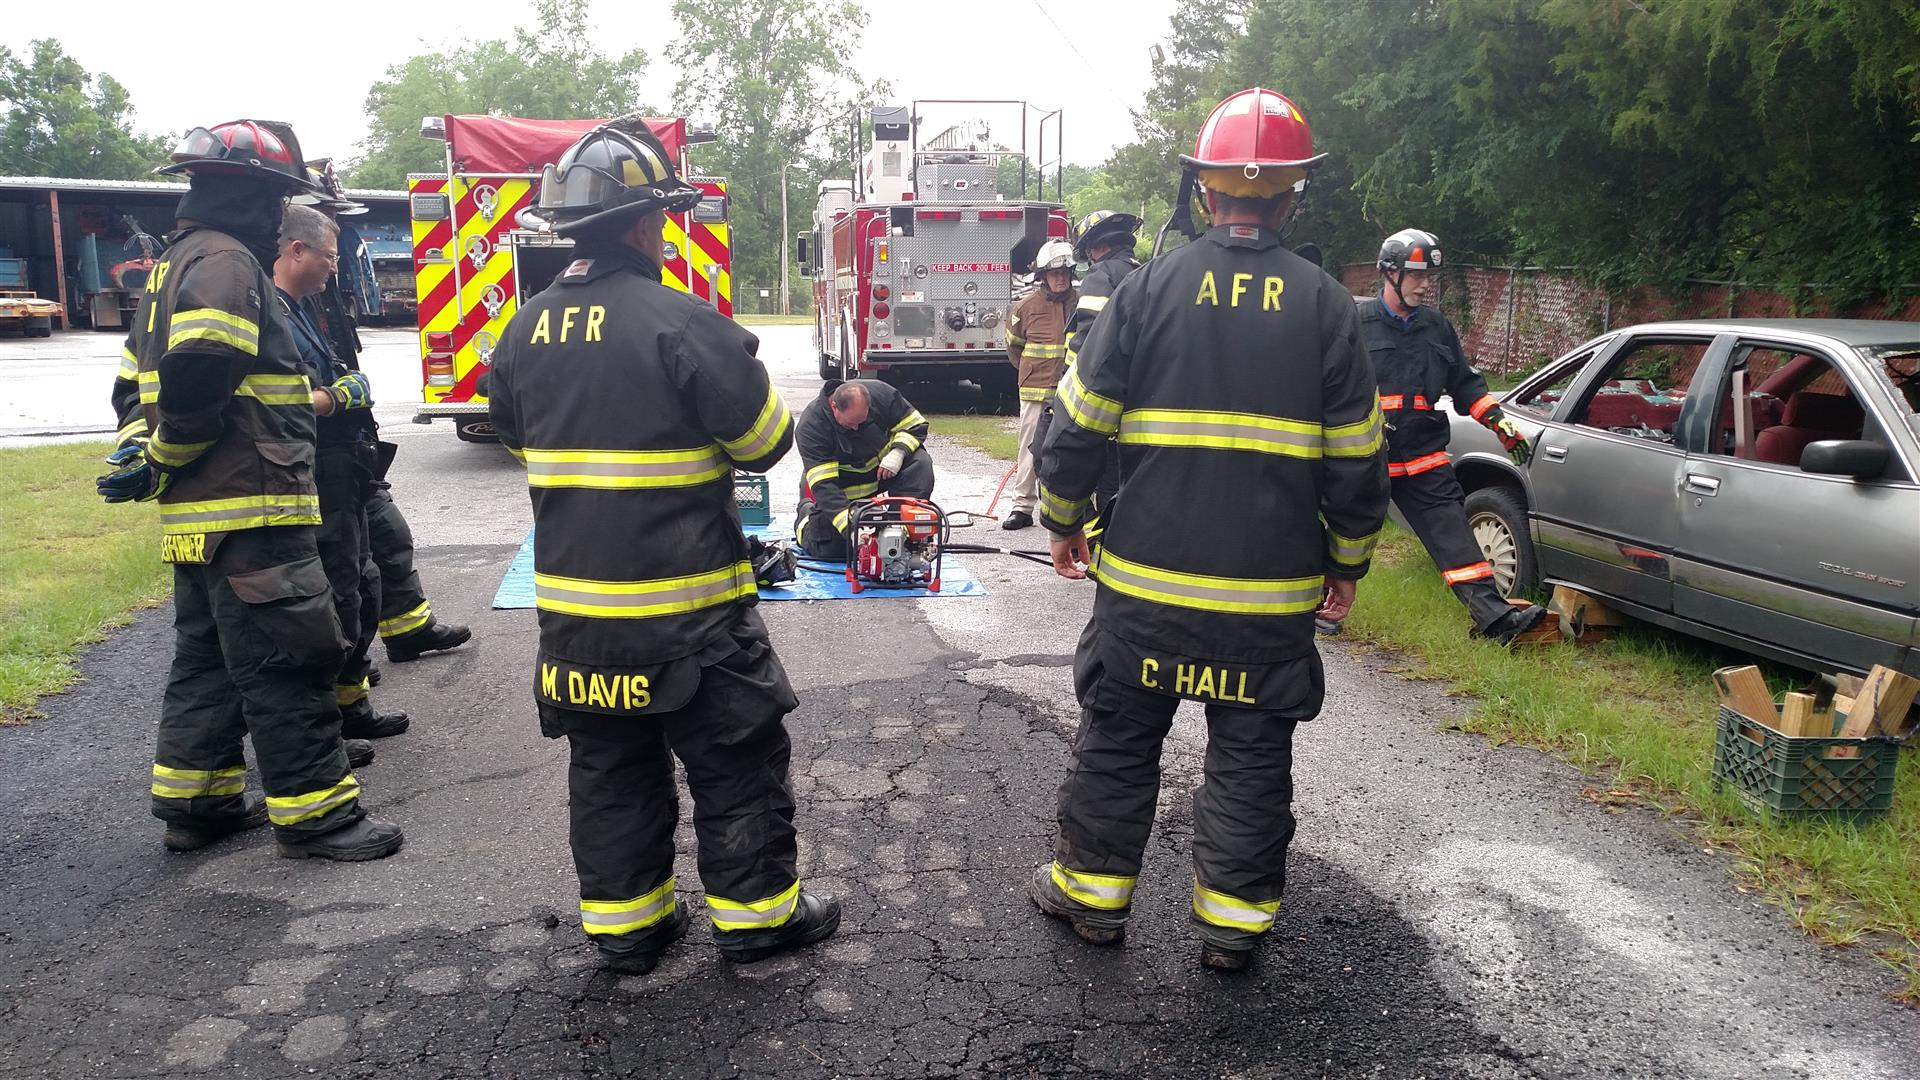 Training with car wreck equipment